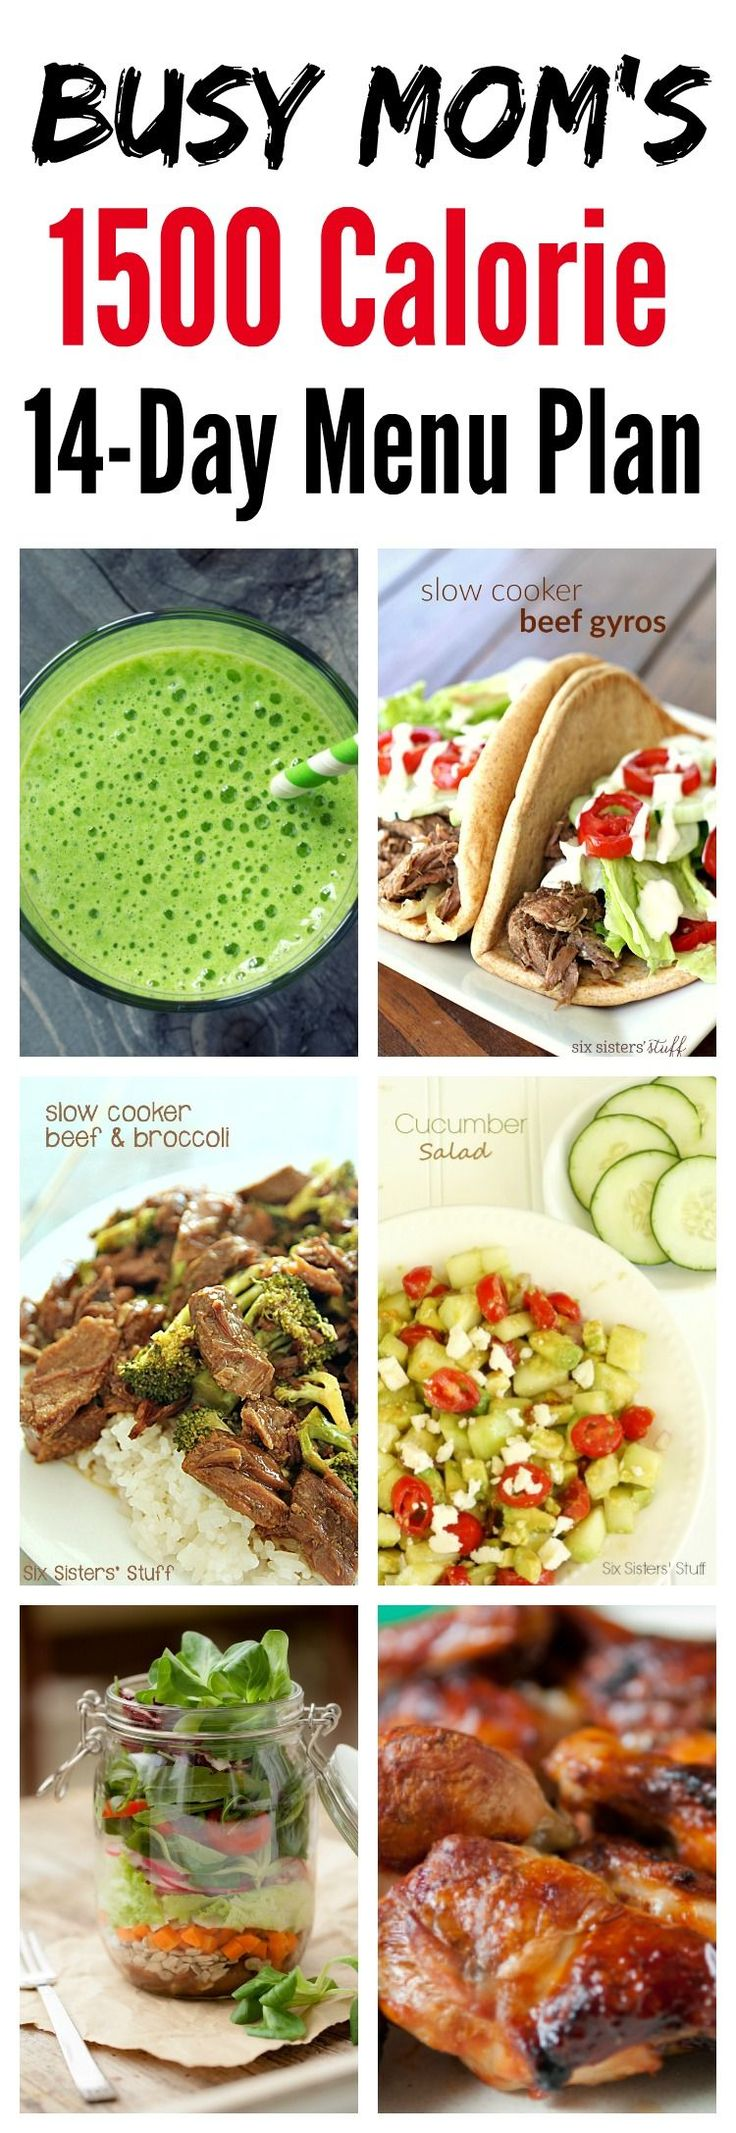 1500 Calorie 14-Day Healthy Eating Plan for Busy Moms on Tone-and-Tighten.com